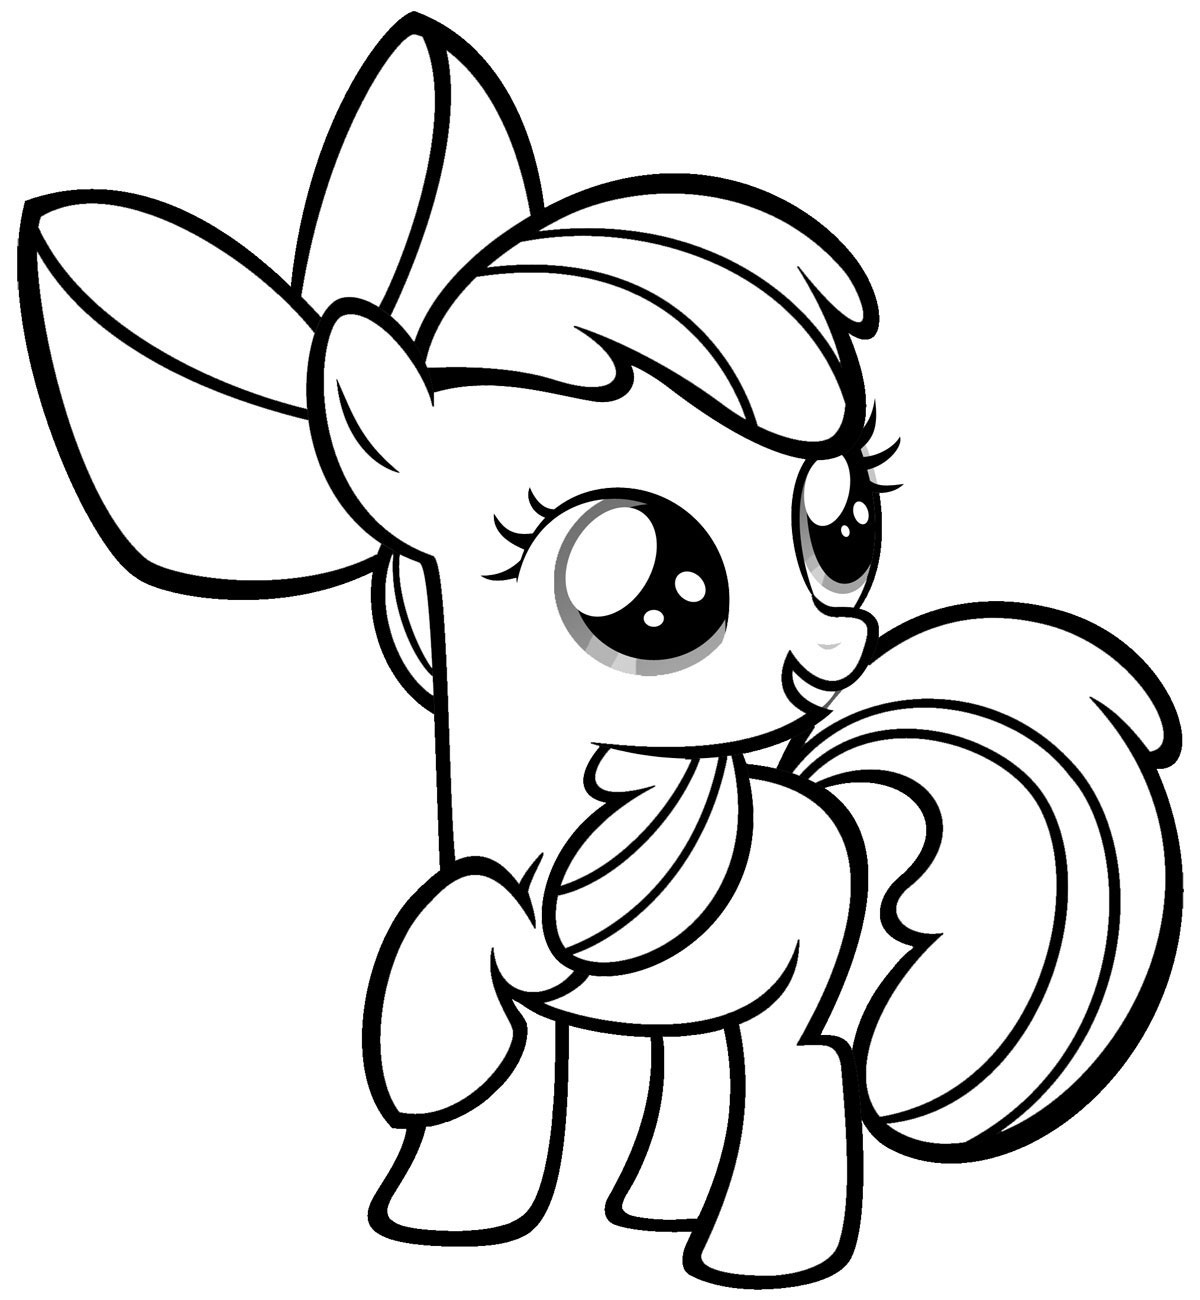 My Little Pony clipart printable coloring page Printable Pages Free Coloring My